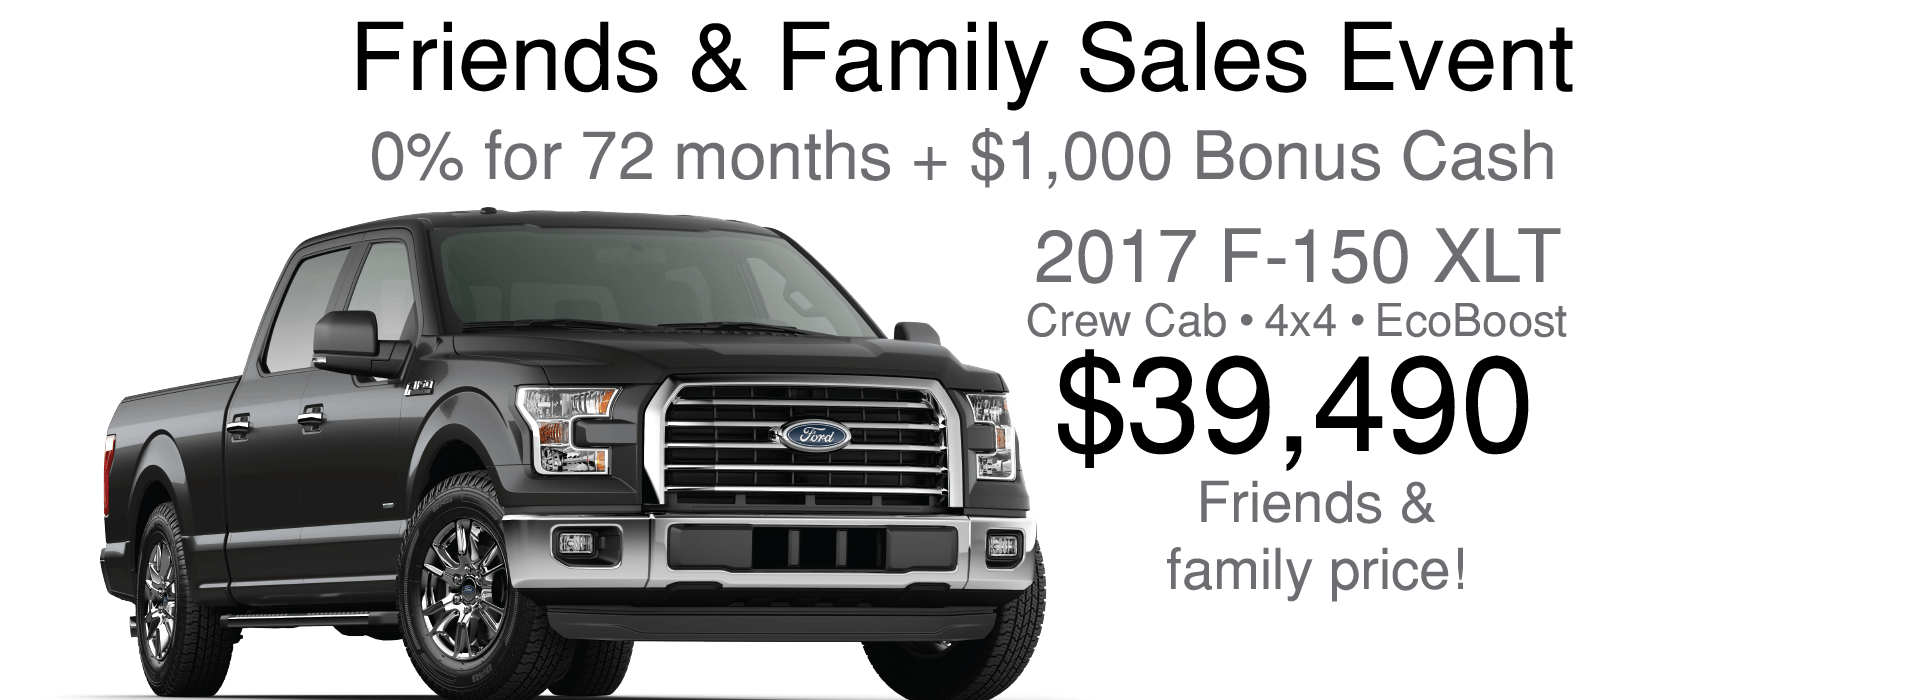 2017 Ford F-150 XLT Crew 4x4 EcoBoost Friends and family price:$39,490